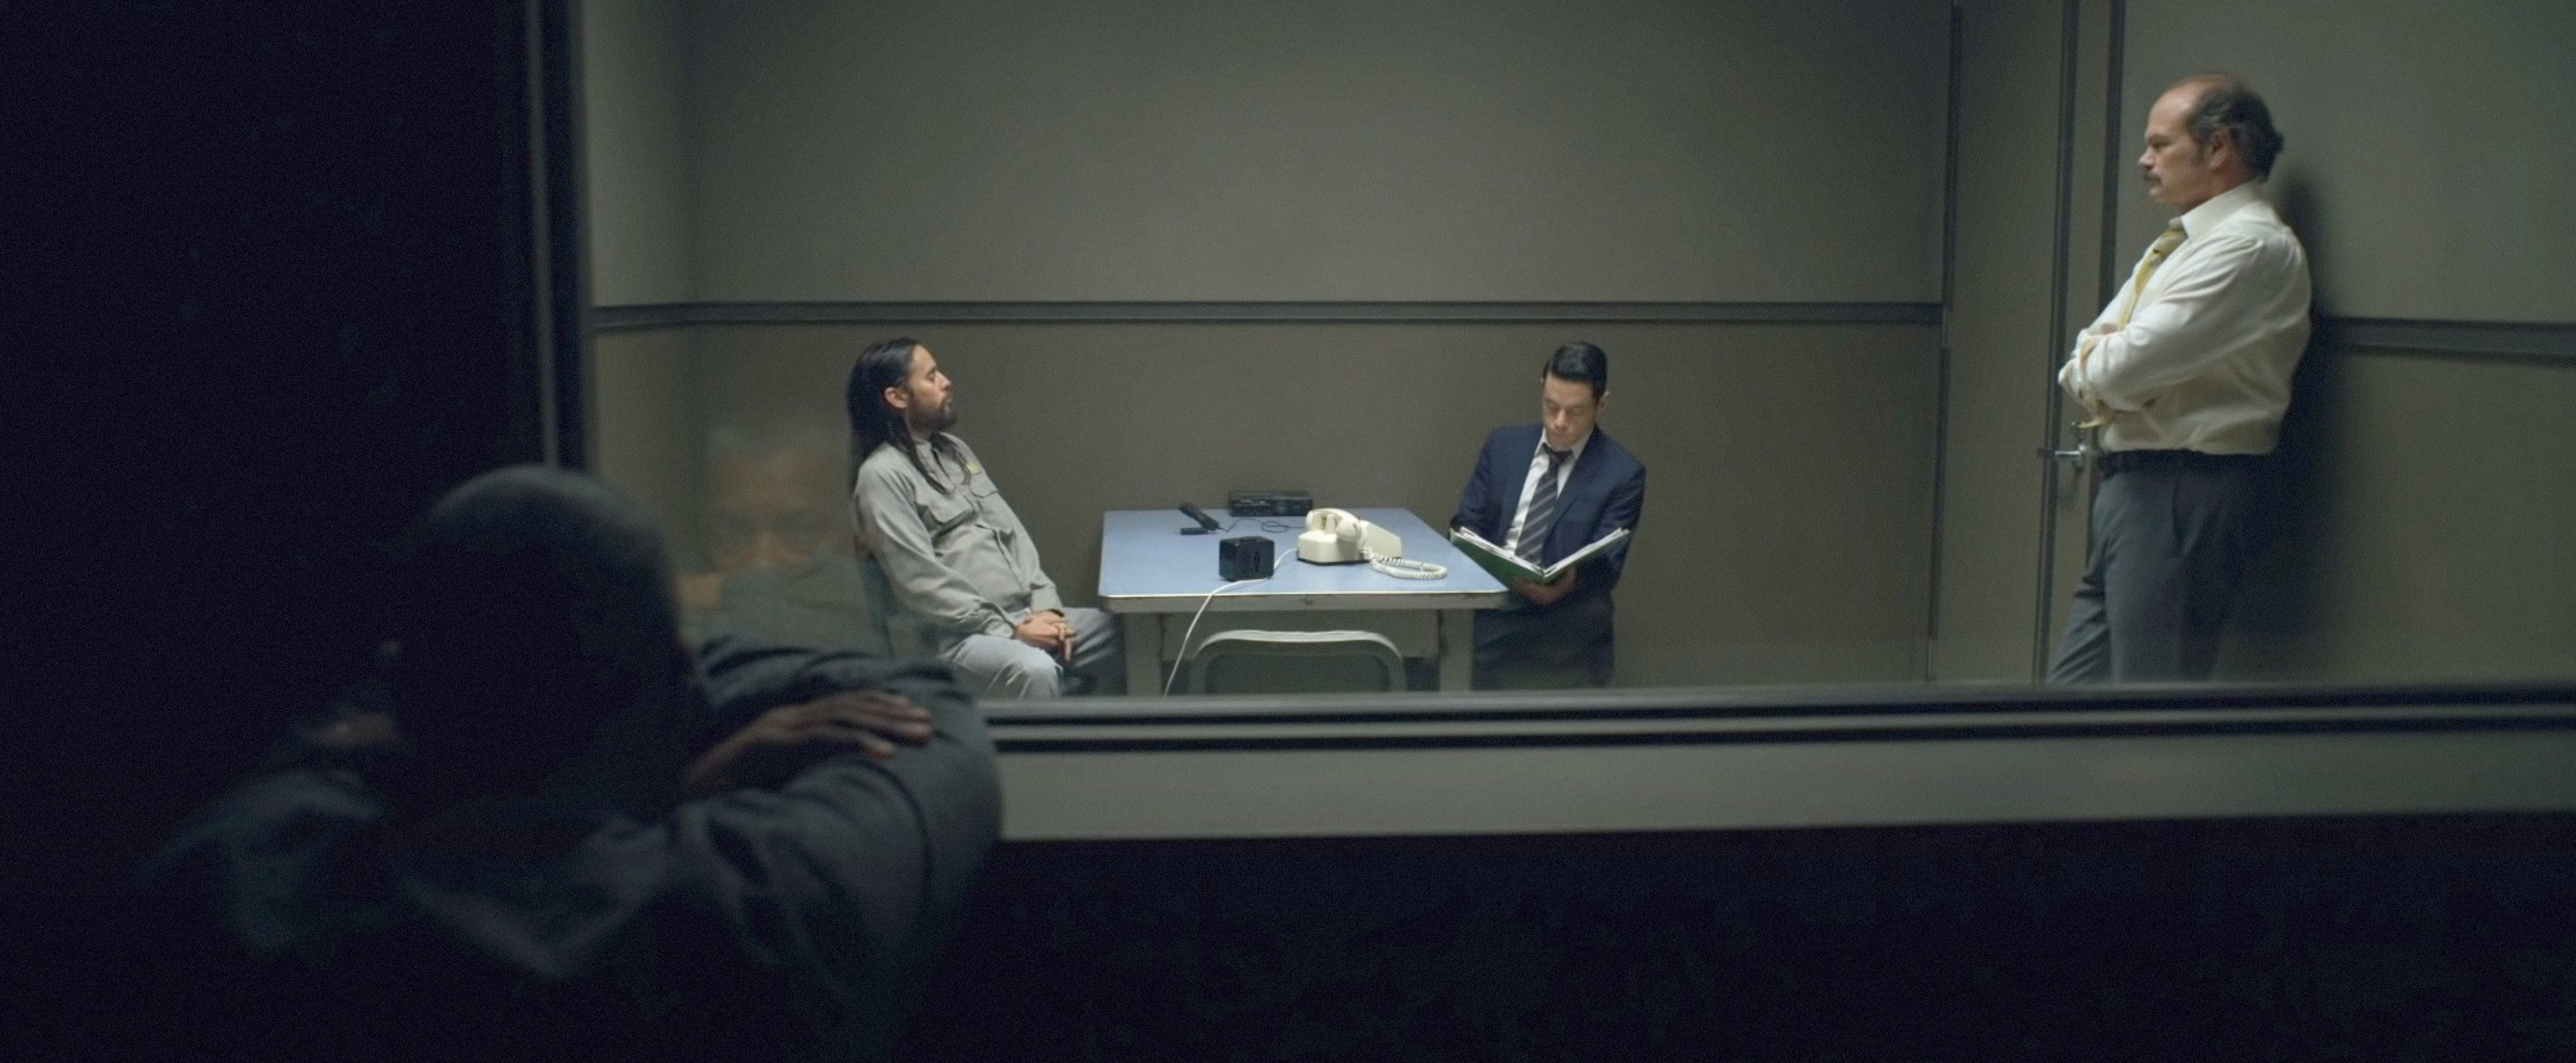 still image of denzel washington, jared leto, rami malek and chris bauer in the movie the little things, in the still jared leto is being questioned by rami malek inside of jail in a room